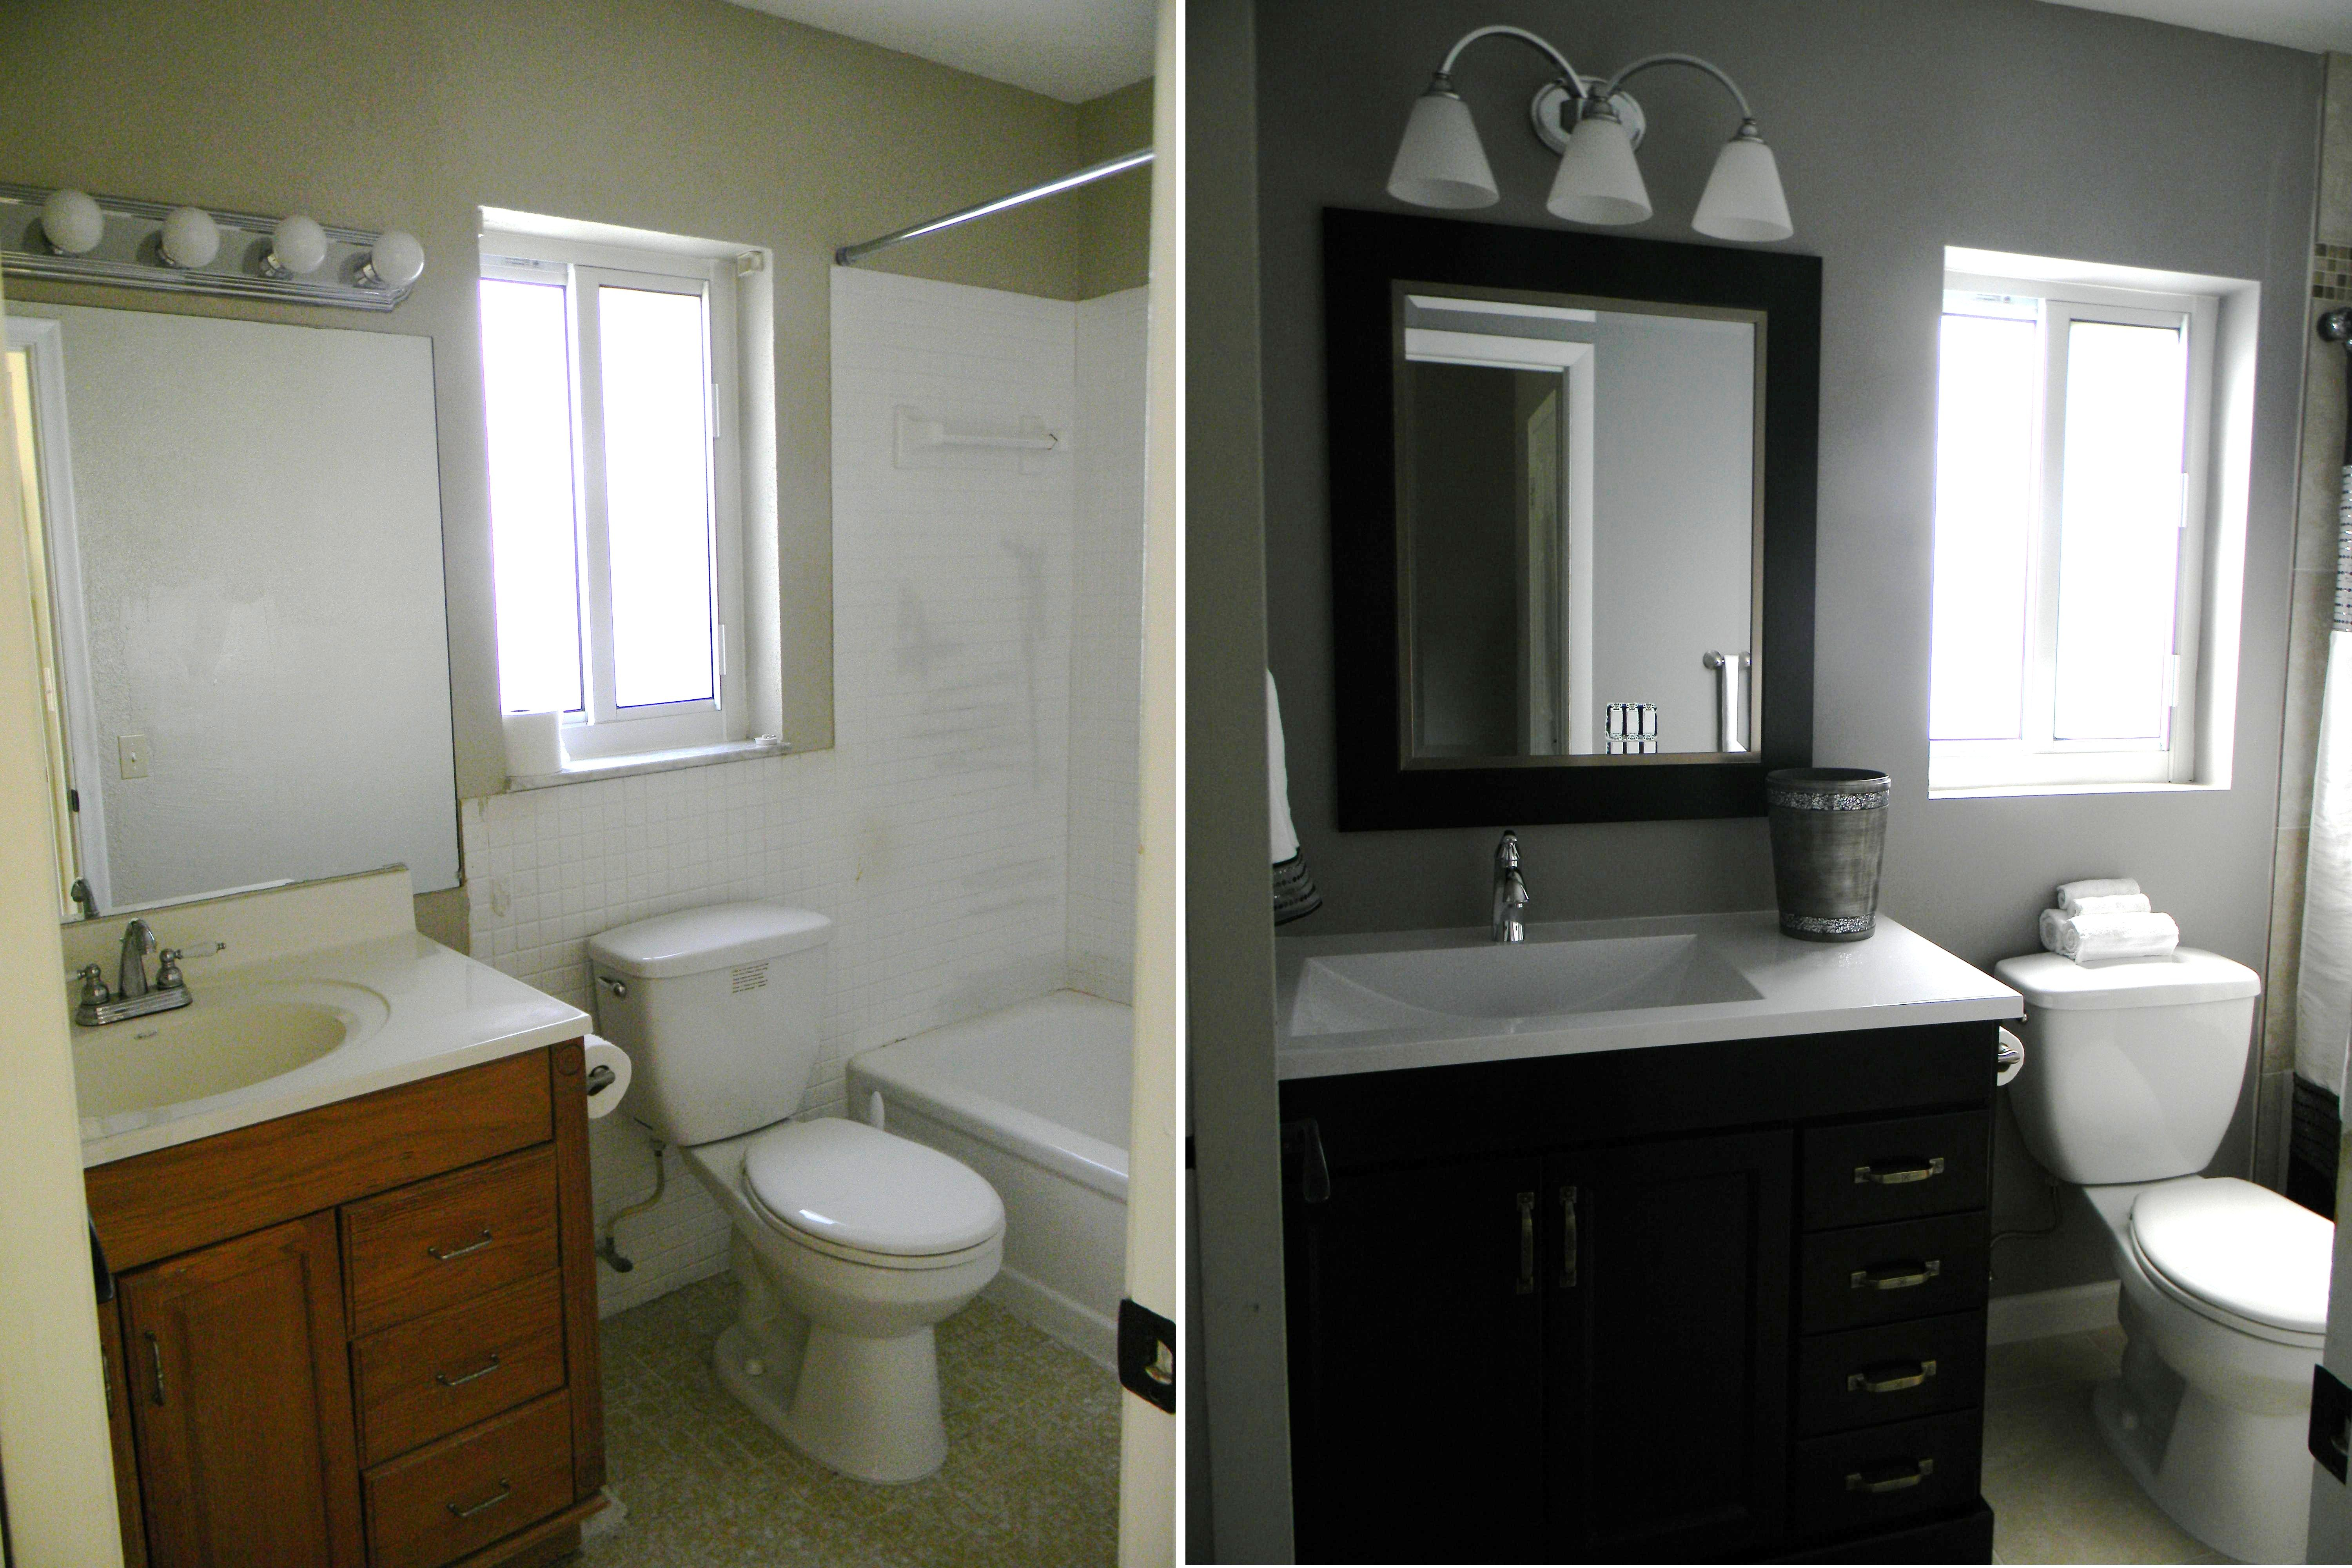 pin by lucy on home bathrooms inexpensive bathroom on bathroom renovation ideas on a budget id=44765